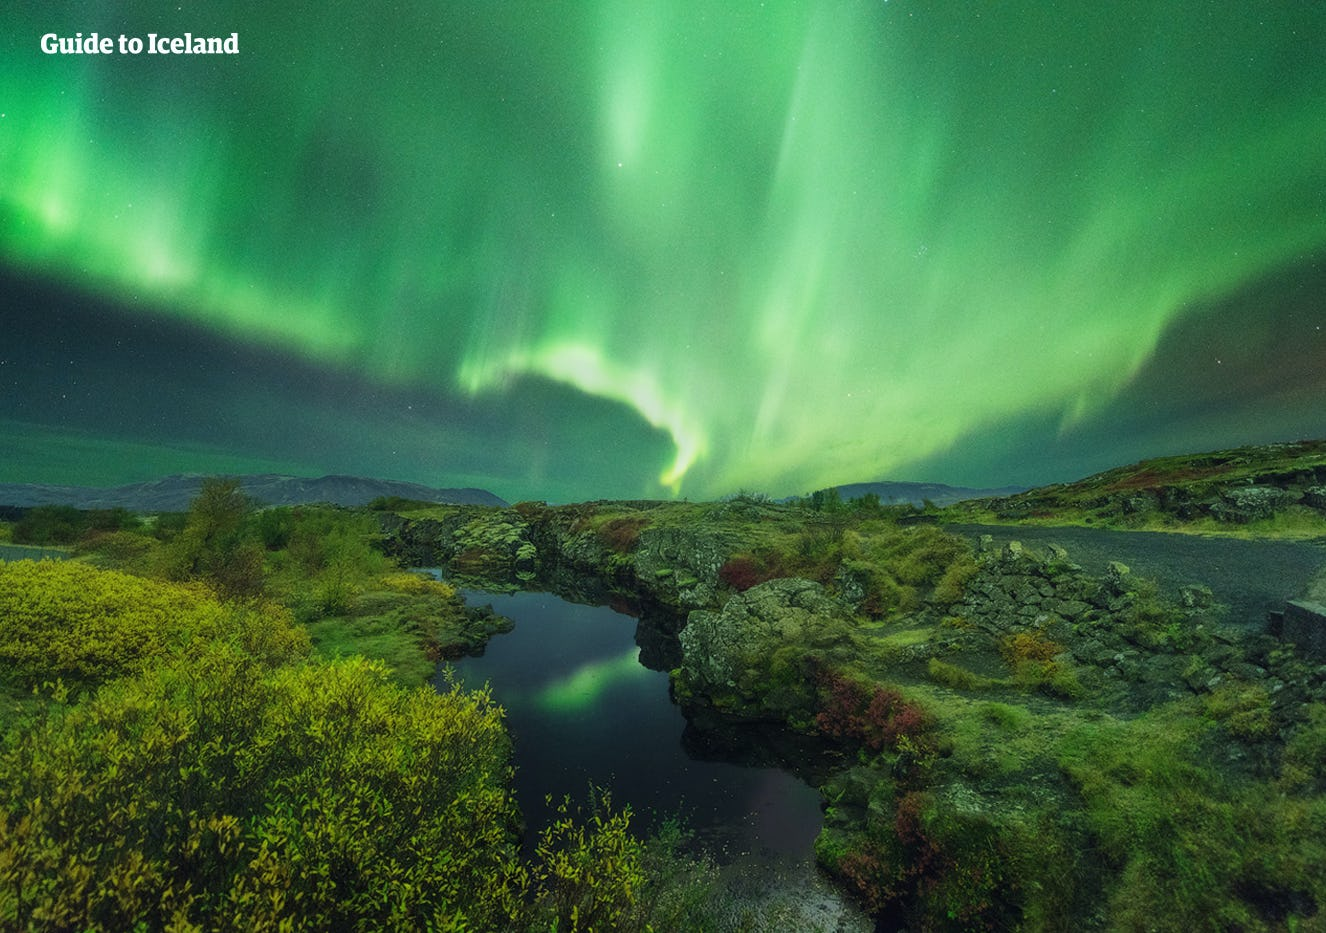 Þingvellir National Park is a place of great seasonal contrast, although on the cusps of winter you can see it transitioning.